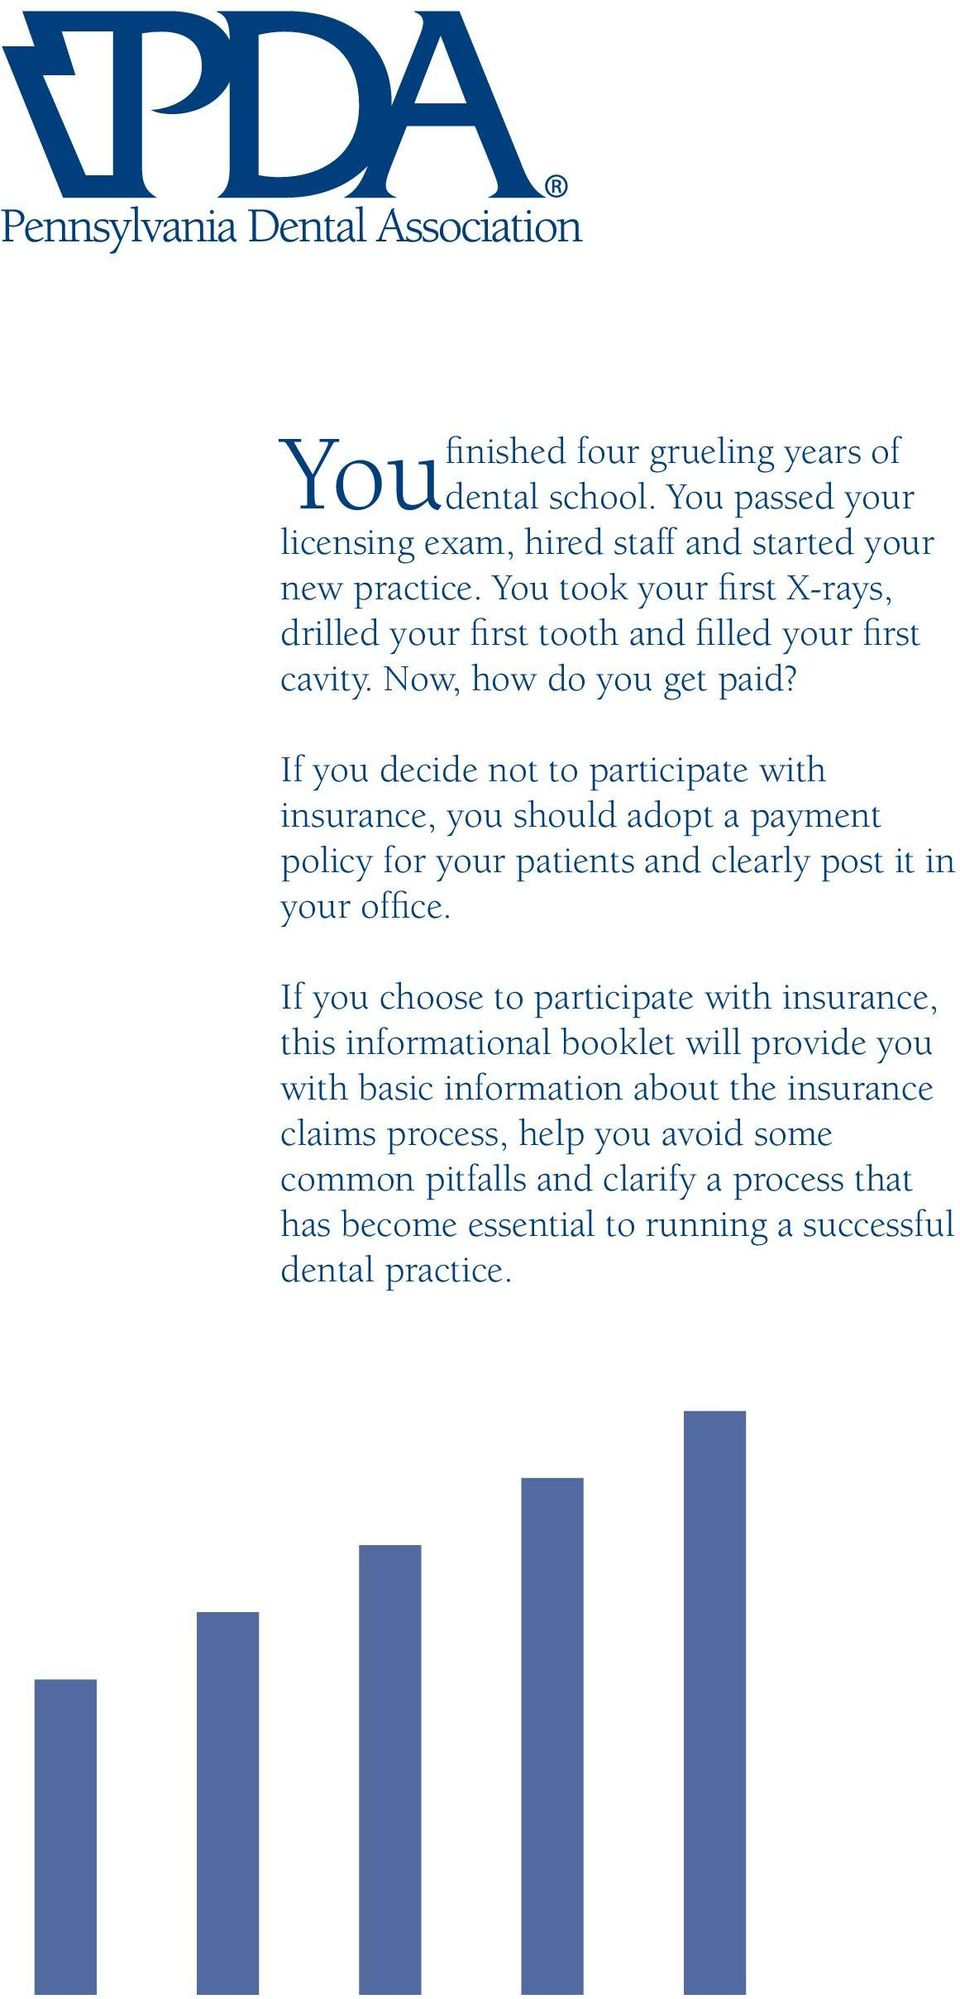 If you decide not to participate with insurance, you should adopt a payment policy for your patients and clearly post it in your office.